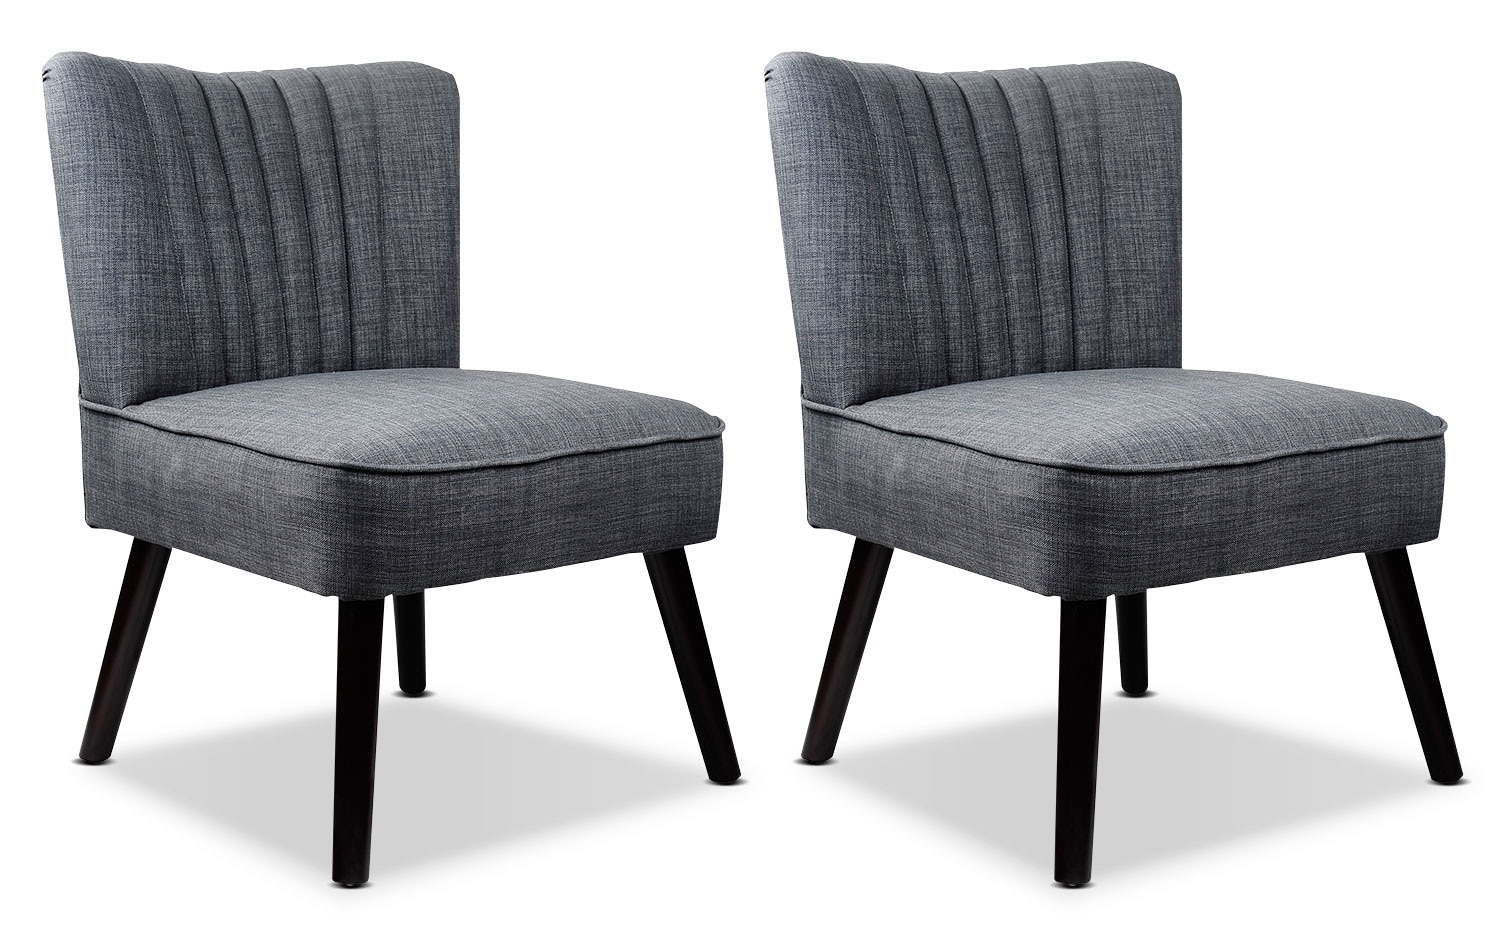 Living Room Furniture - LAD Linen-Look Fabric Accent Chairs, Set of 2 – Grey